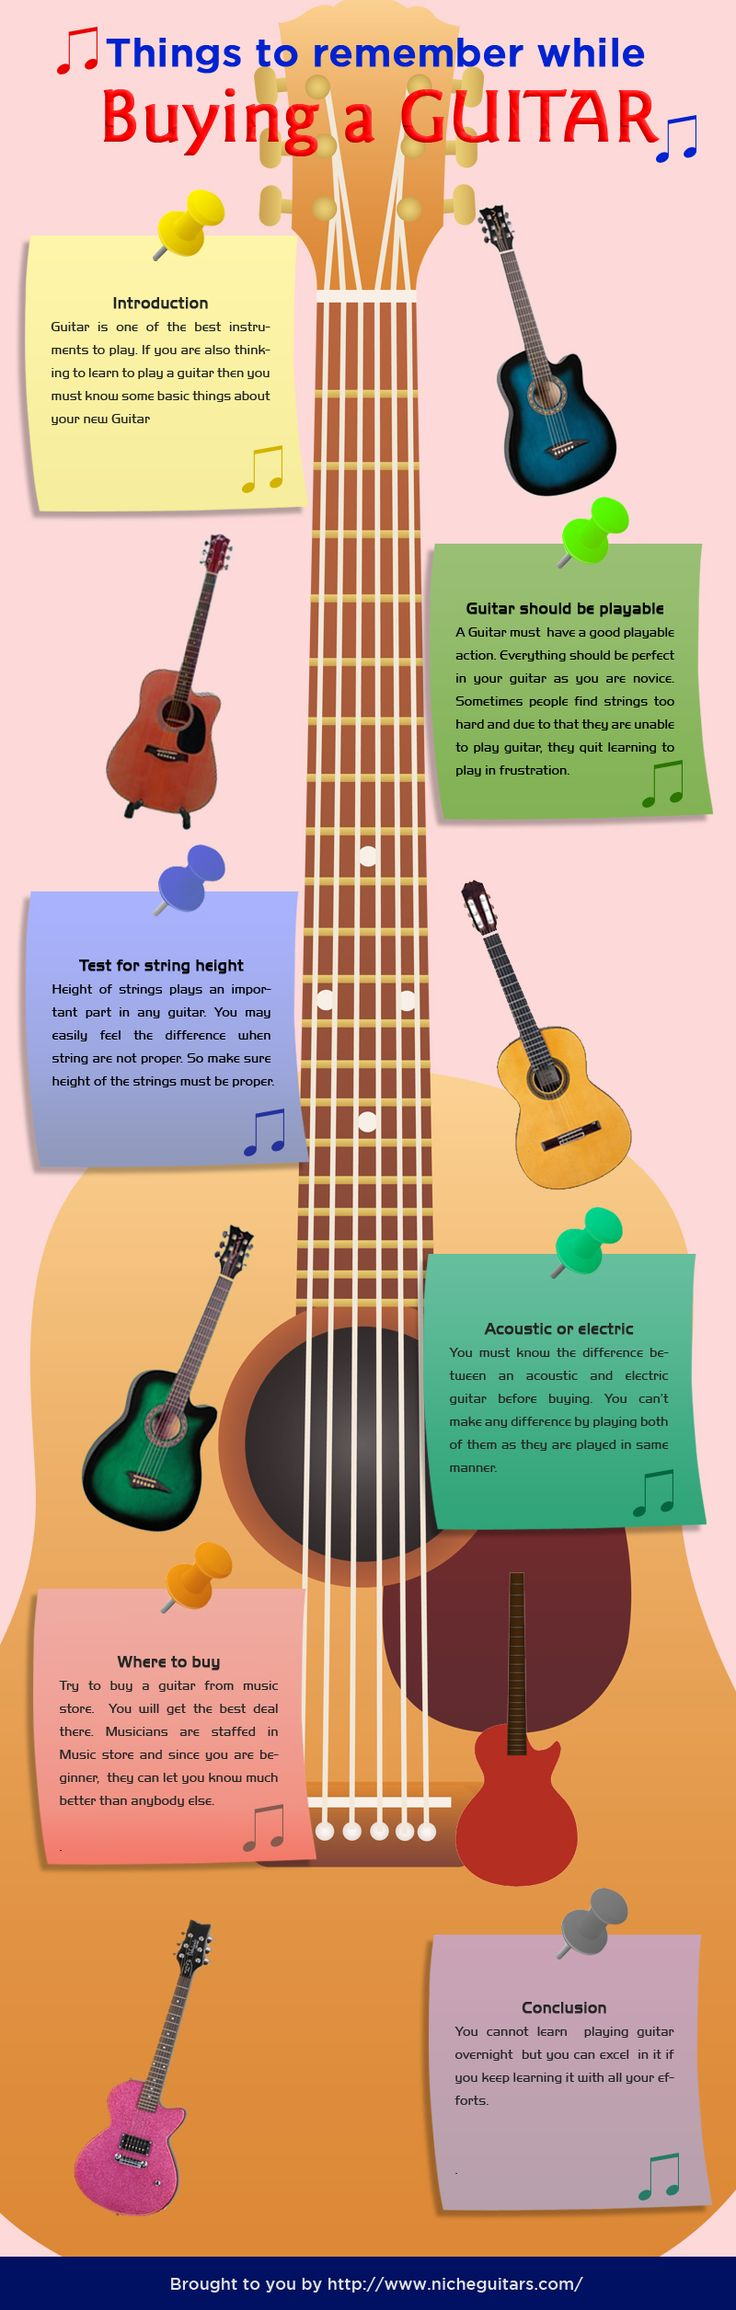 things-to-remember-while-buying-a-guitar-infographic.  Just come to Music Mart in Solana Beach, CA - we have the best Acoustic & Electric, and we even have a great on-site guitar instructor :)